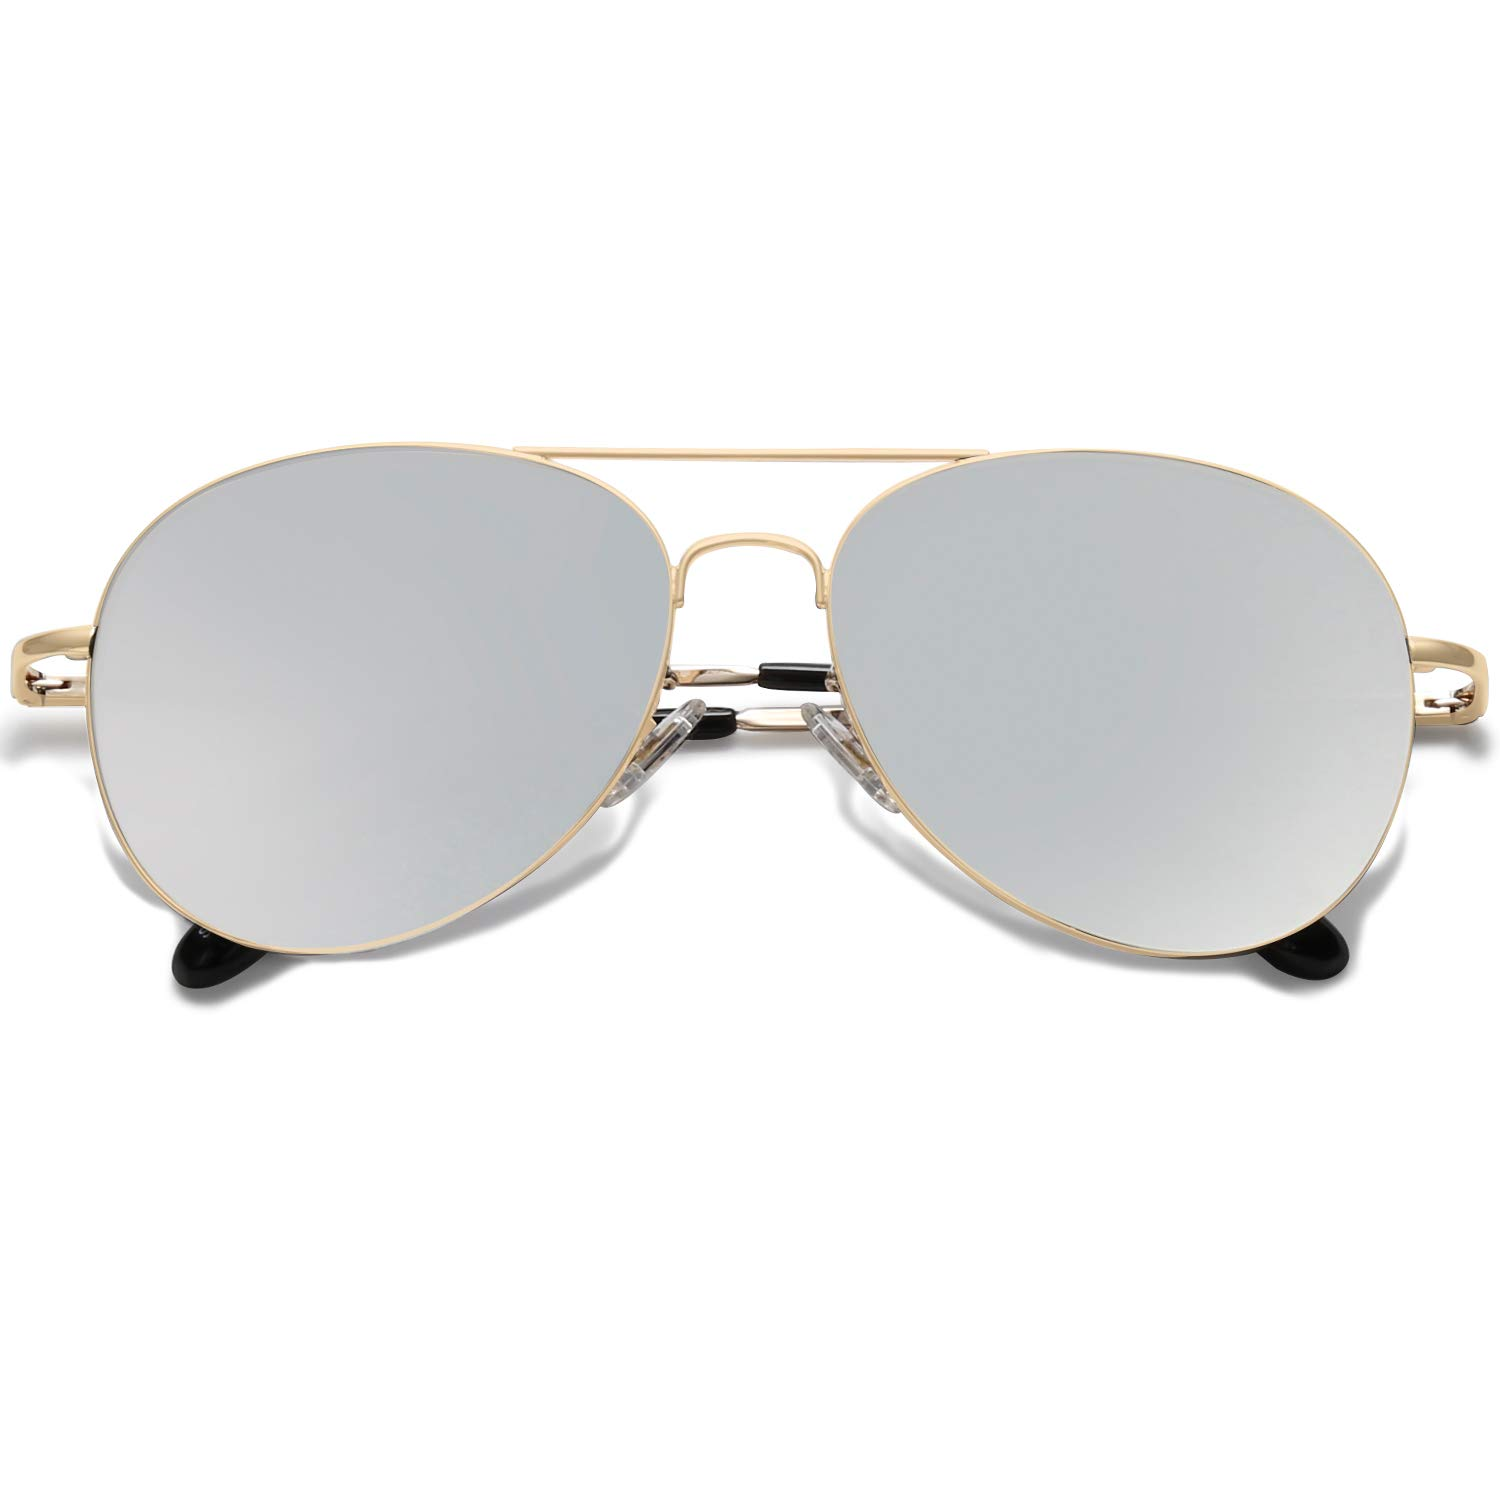 SOJOS Classic Aviator Mirrored Flat Lens Sunglasses Metal Frame with Spring Hinges SJ1030 with Gold Frame/Silver Mirrored Lens by SOJOS